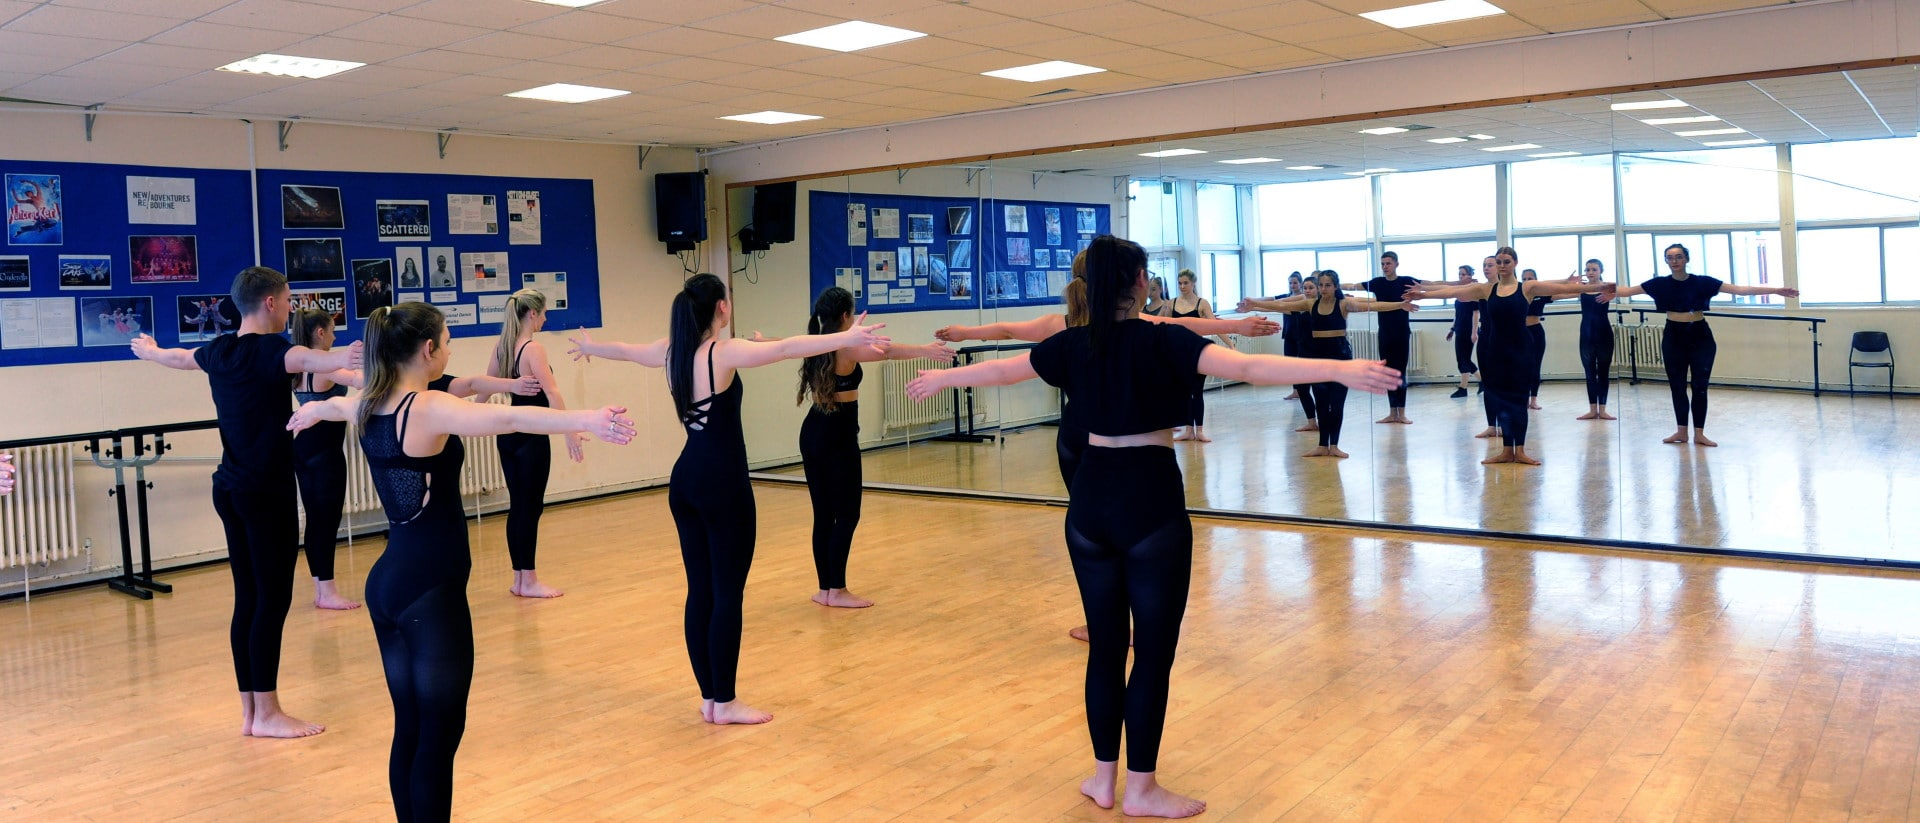 Students in dance studio practice in front of a wall-to-wall mirror.